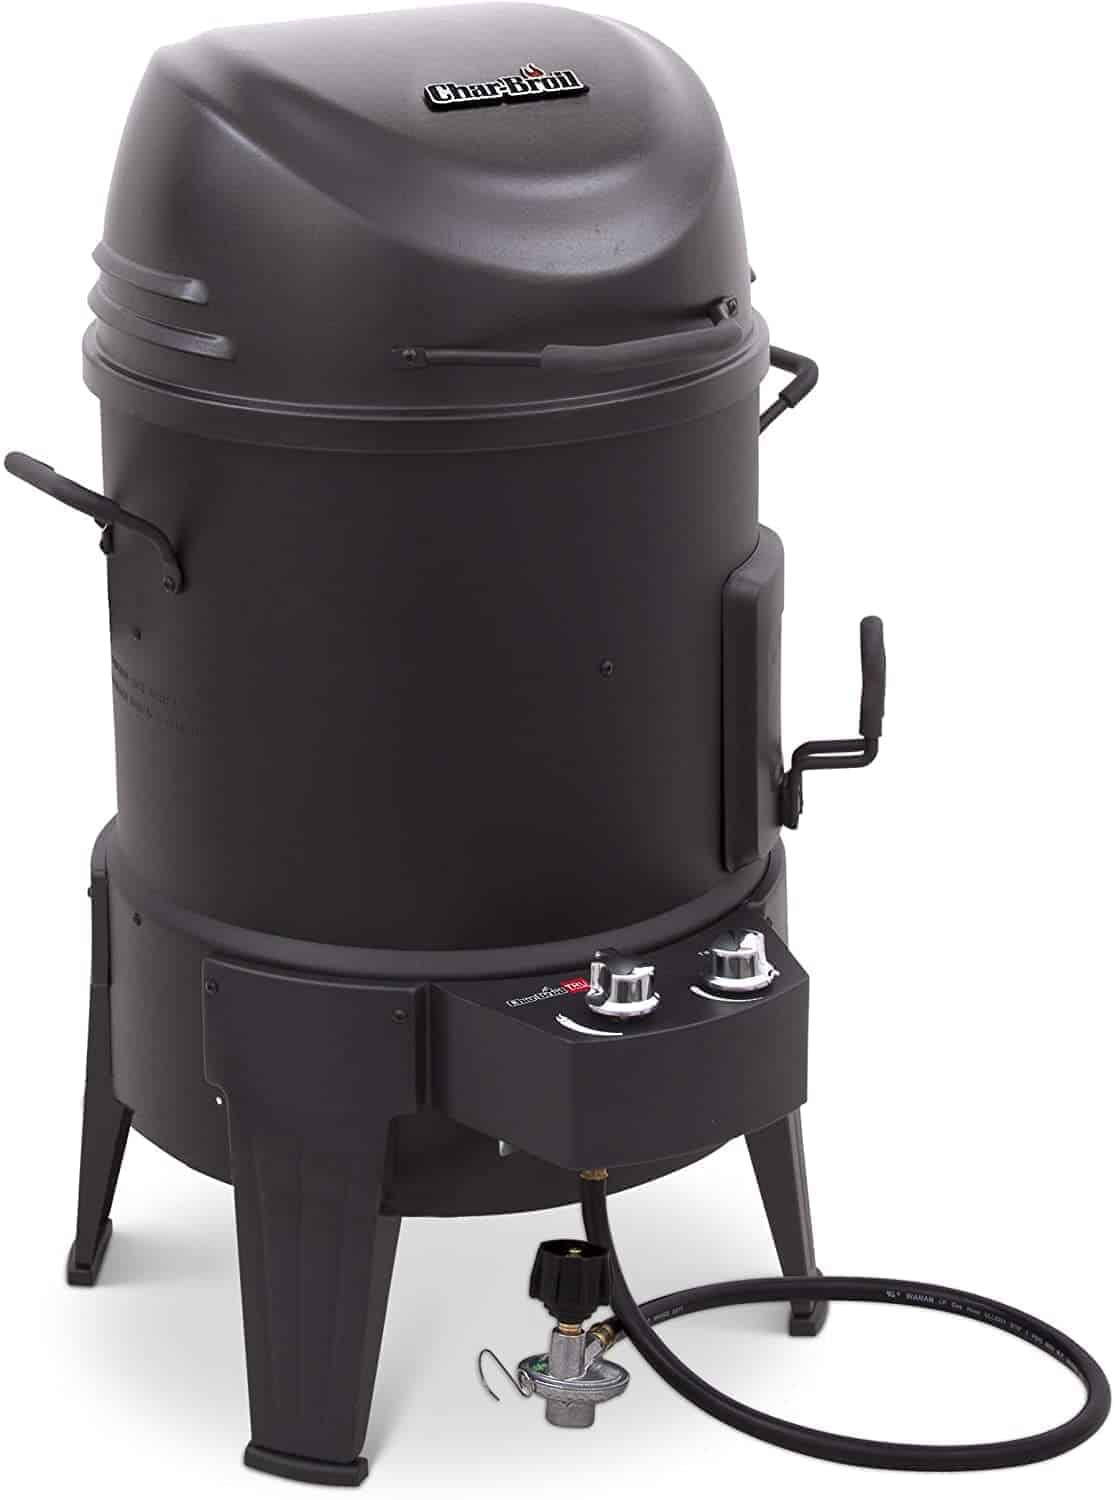 Char-Broil Big Easy TRU-Infrared Grill and Smoker Combo - everymanscave.com